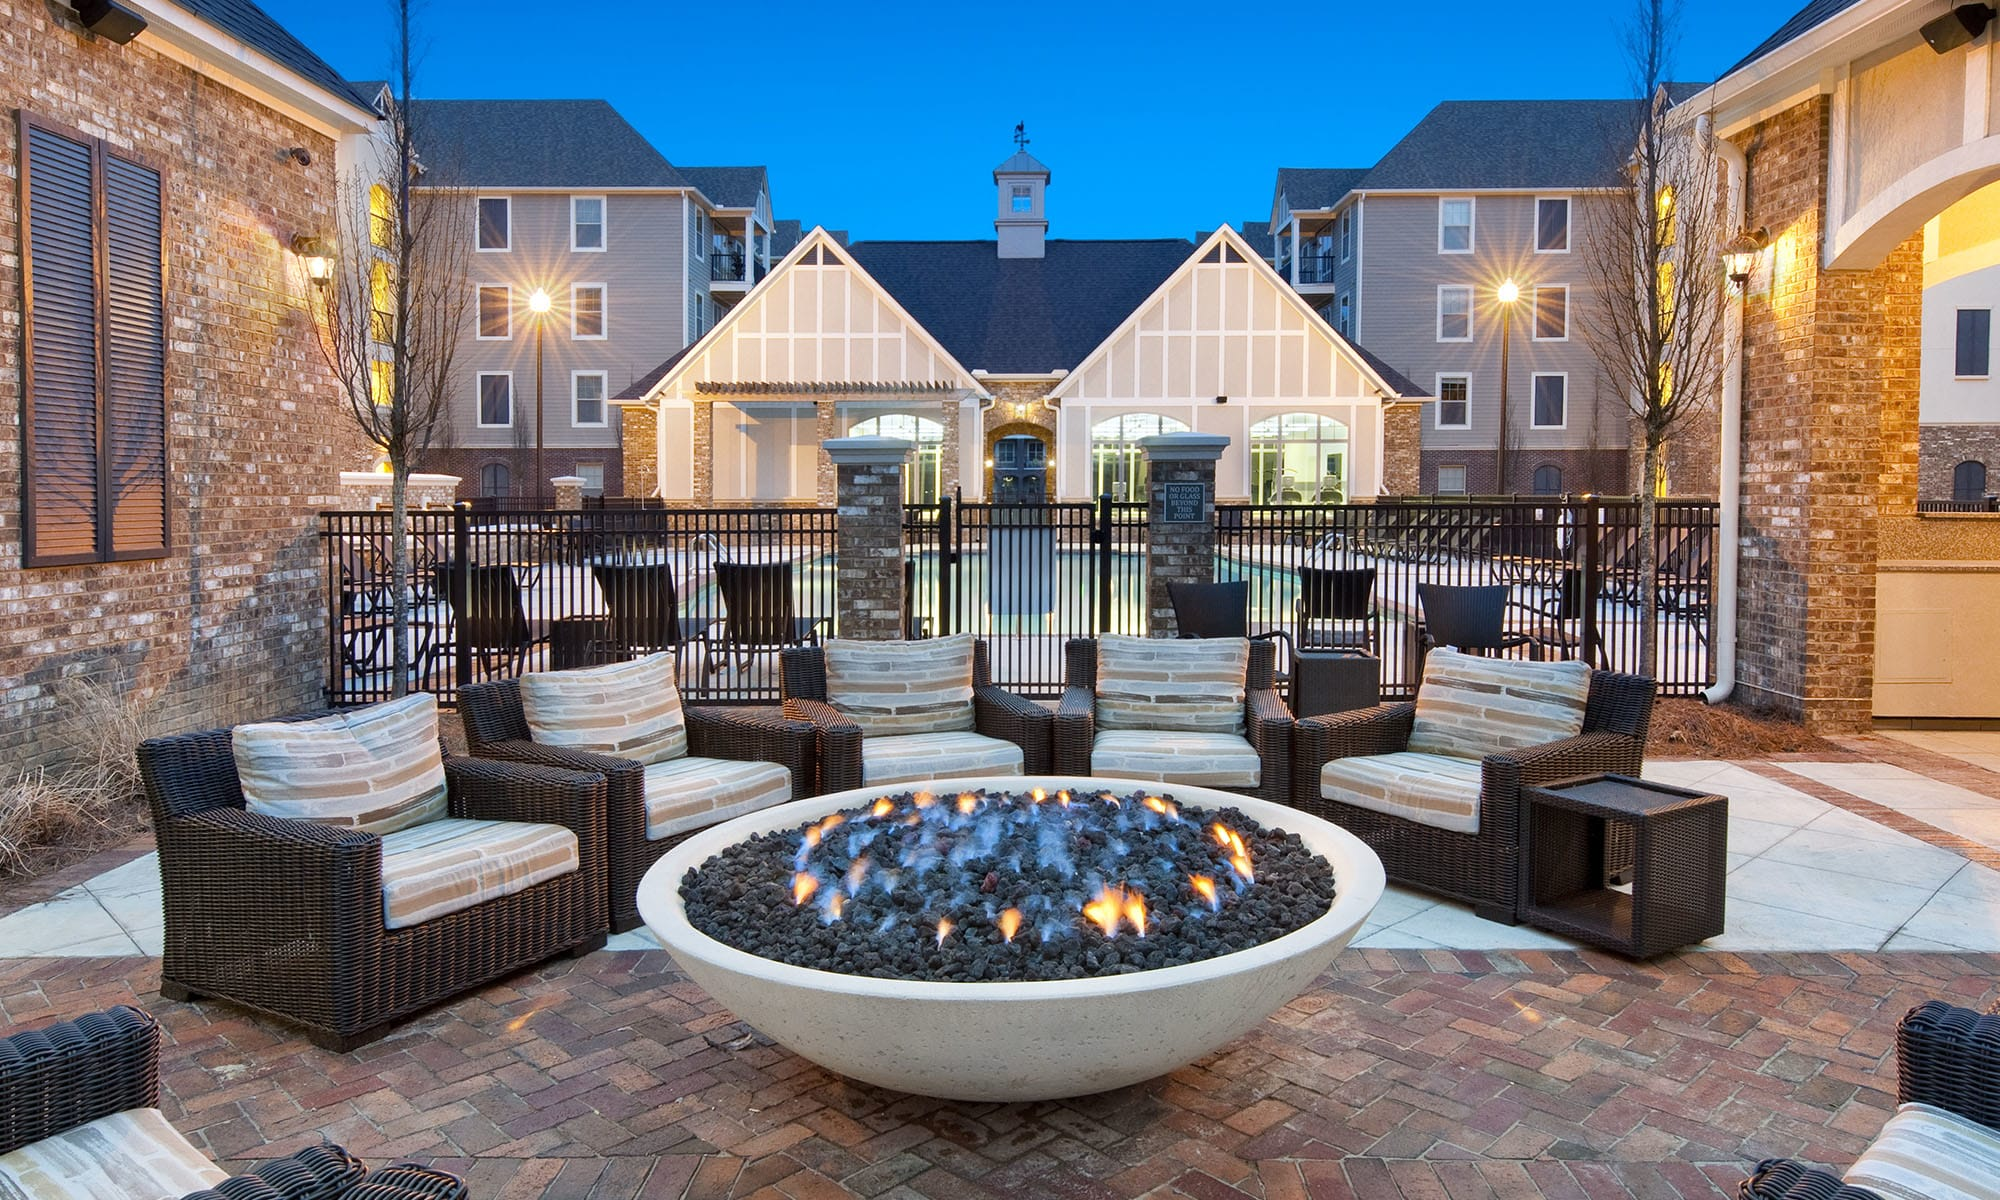 Luxury apartments in Mountain Brook, AL